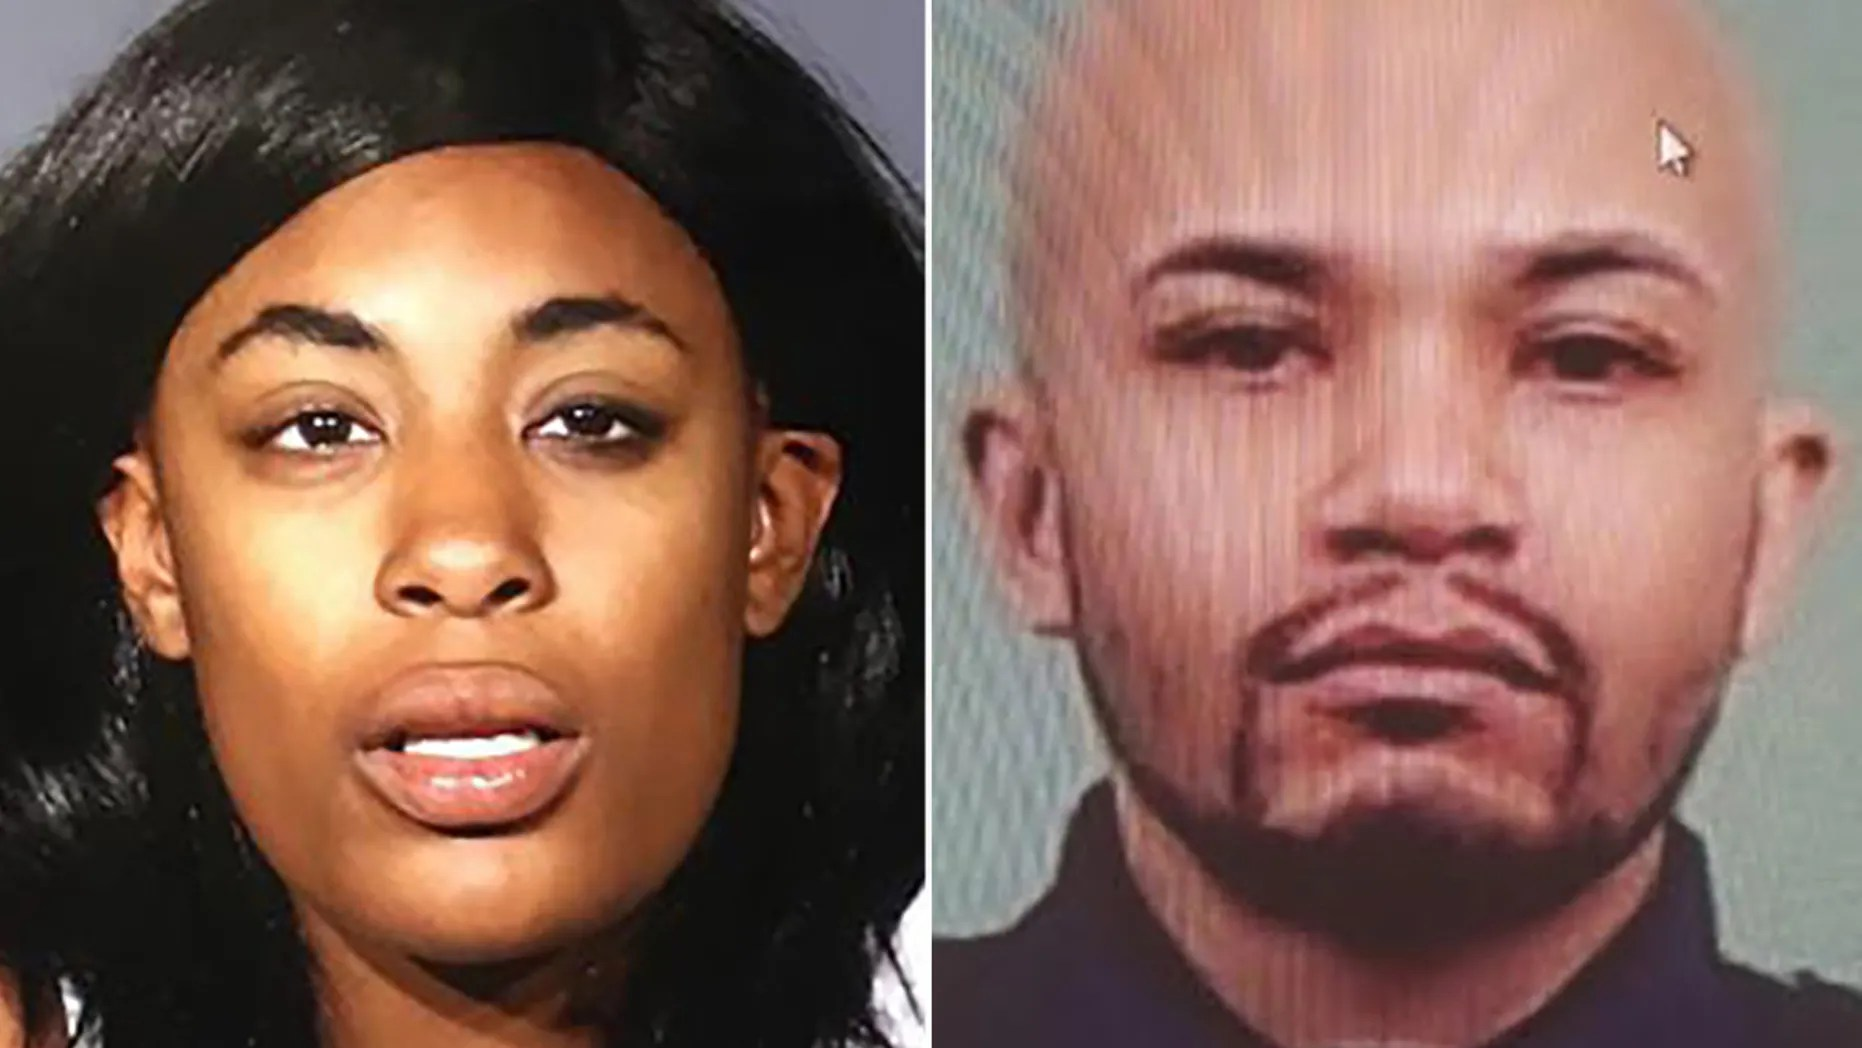 Taquanna Lawton, 20, is accused of stealing Ali Sheppard's vehicle after he hired her for a rendezvous. Sheppard is a 13-year veteran with the NYPD.